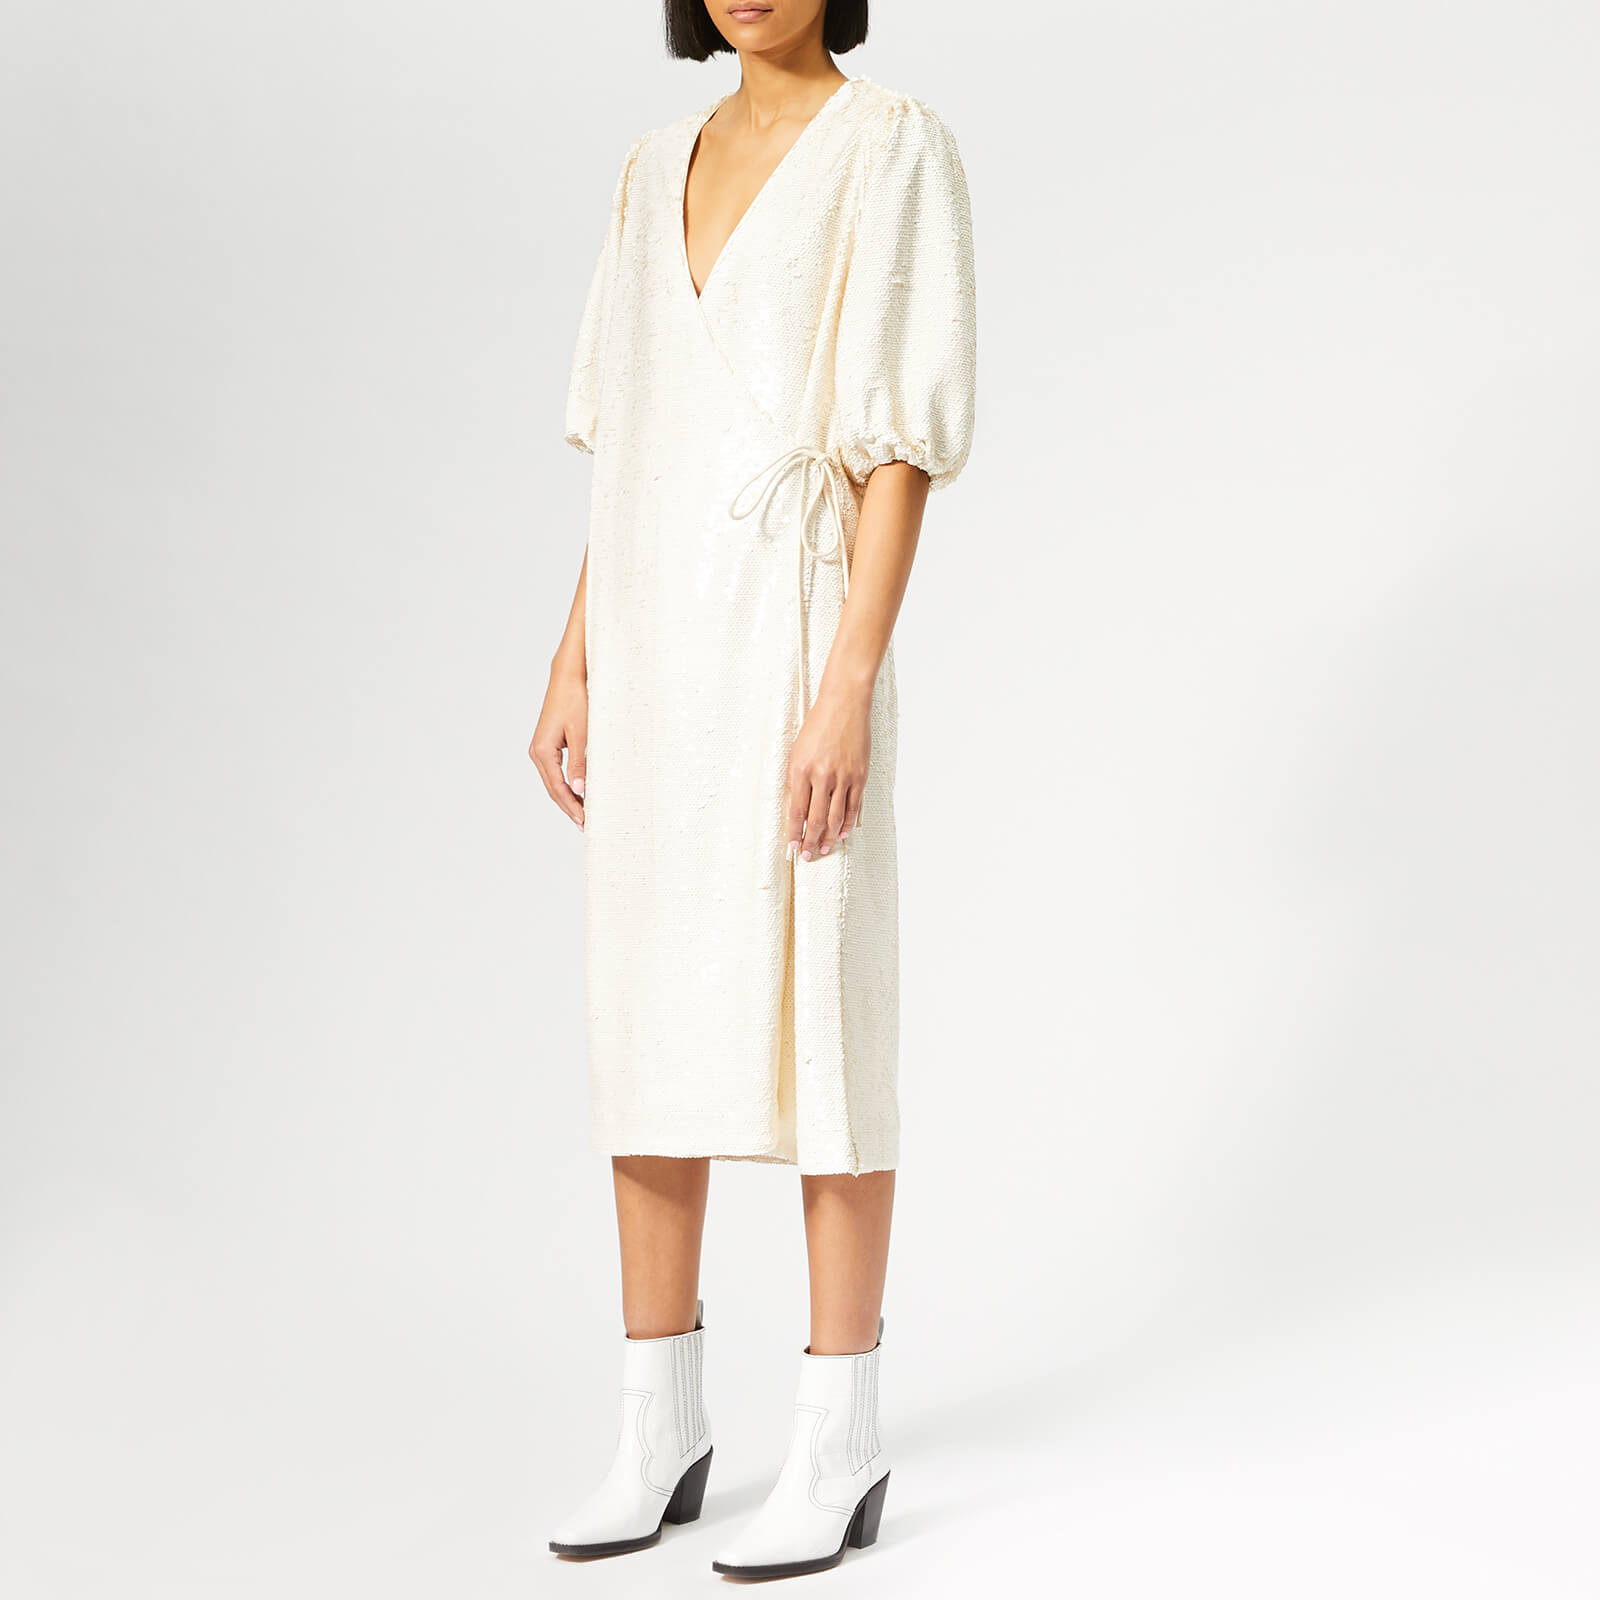 415bf9bed09 Ganni Women s Sonora Midi Dress - Egret - Free UK Delivery over £50